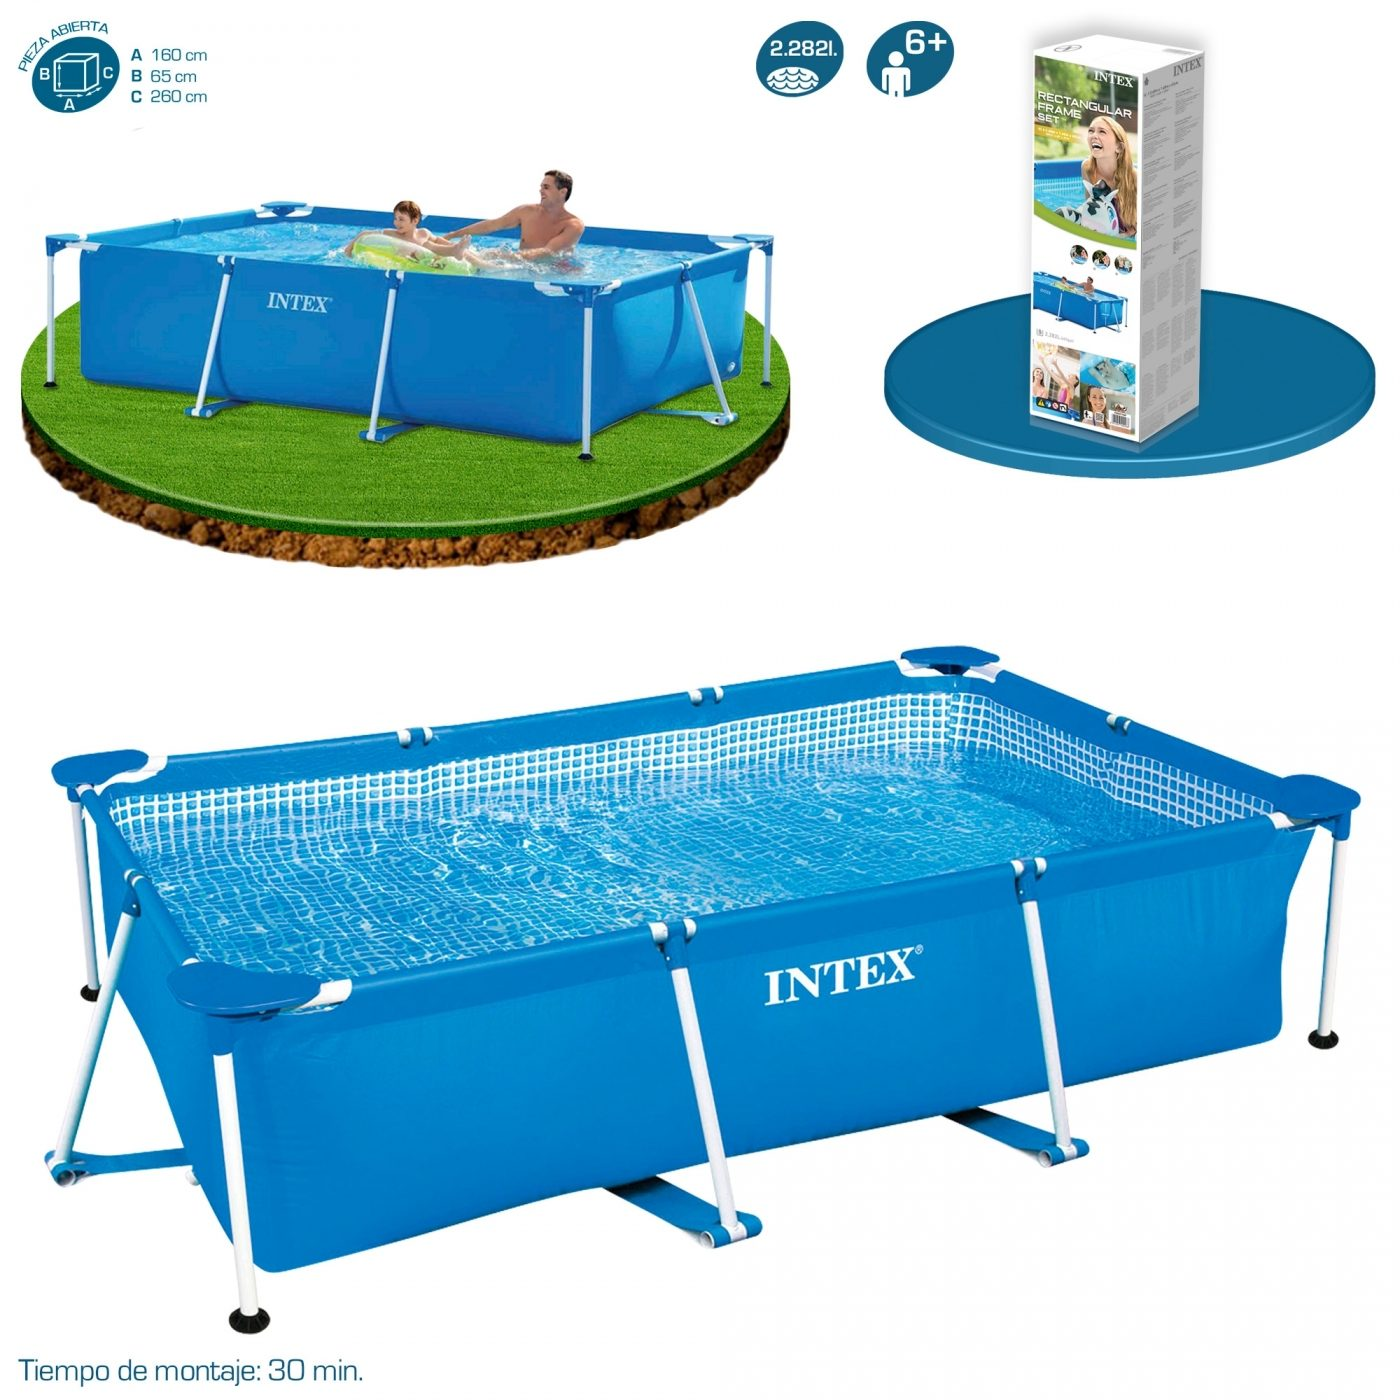 Piscina small frame 260 x 160 x 65 cm intex por 84 95 en for Piscinas rectangulares intex